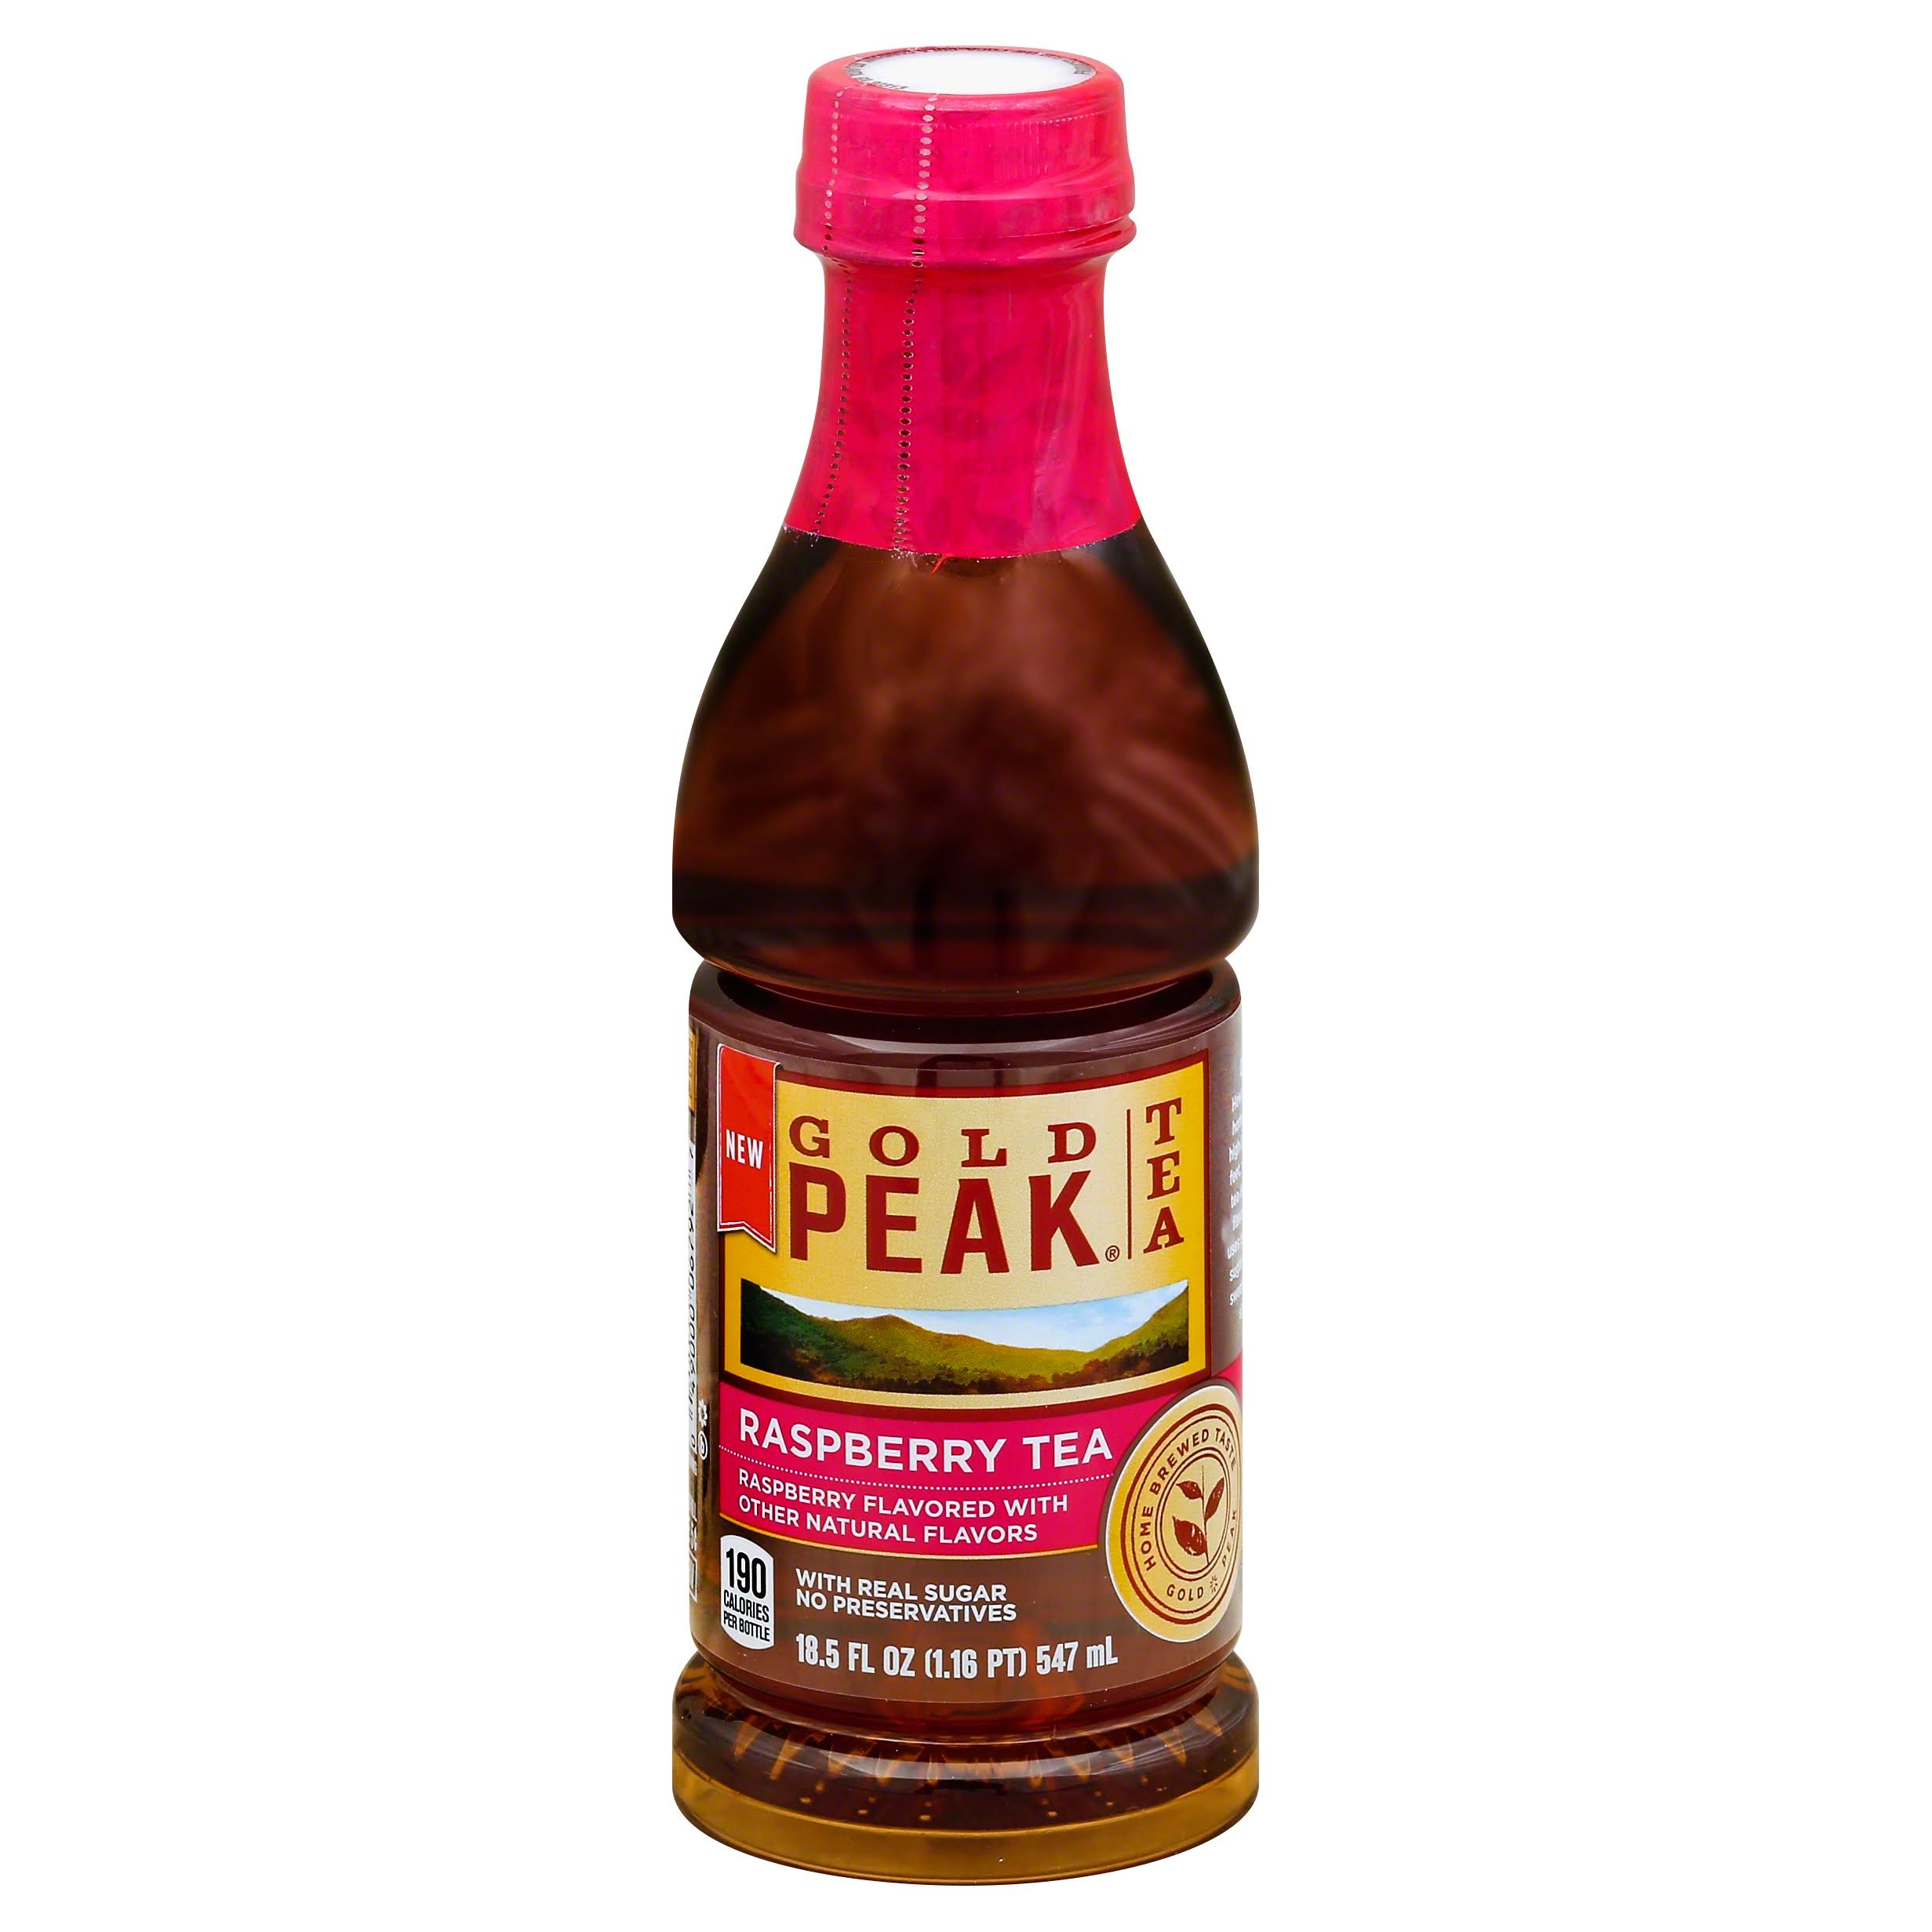 Gold Peak Tea, Raspberry - 18.5 fl oz